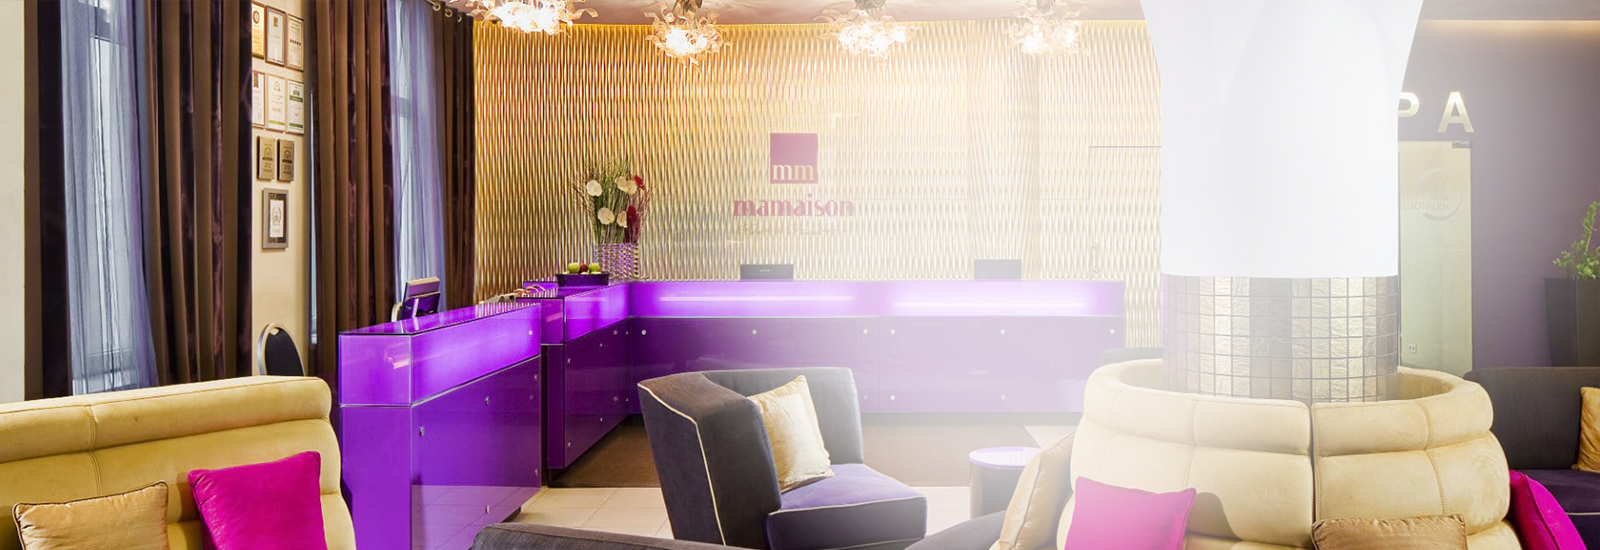 Посудомоечные машины Winterhalter в Mamaison All-Suites Spa Hotel Pokrovka Moscow